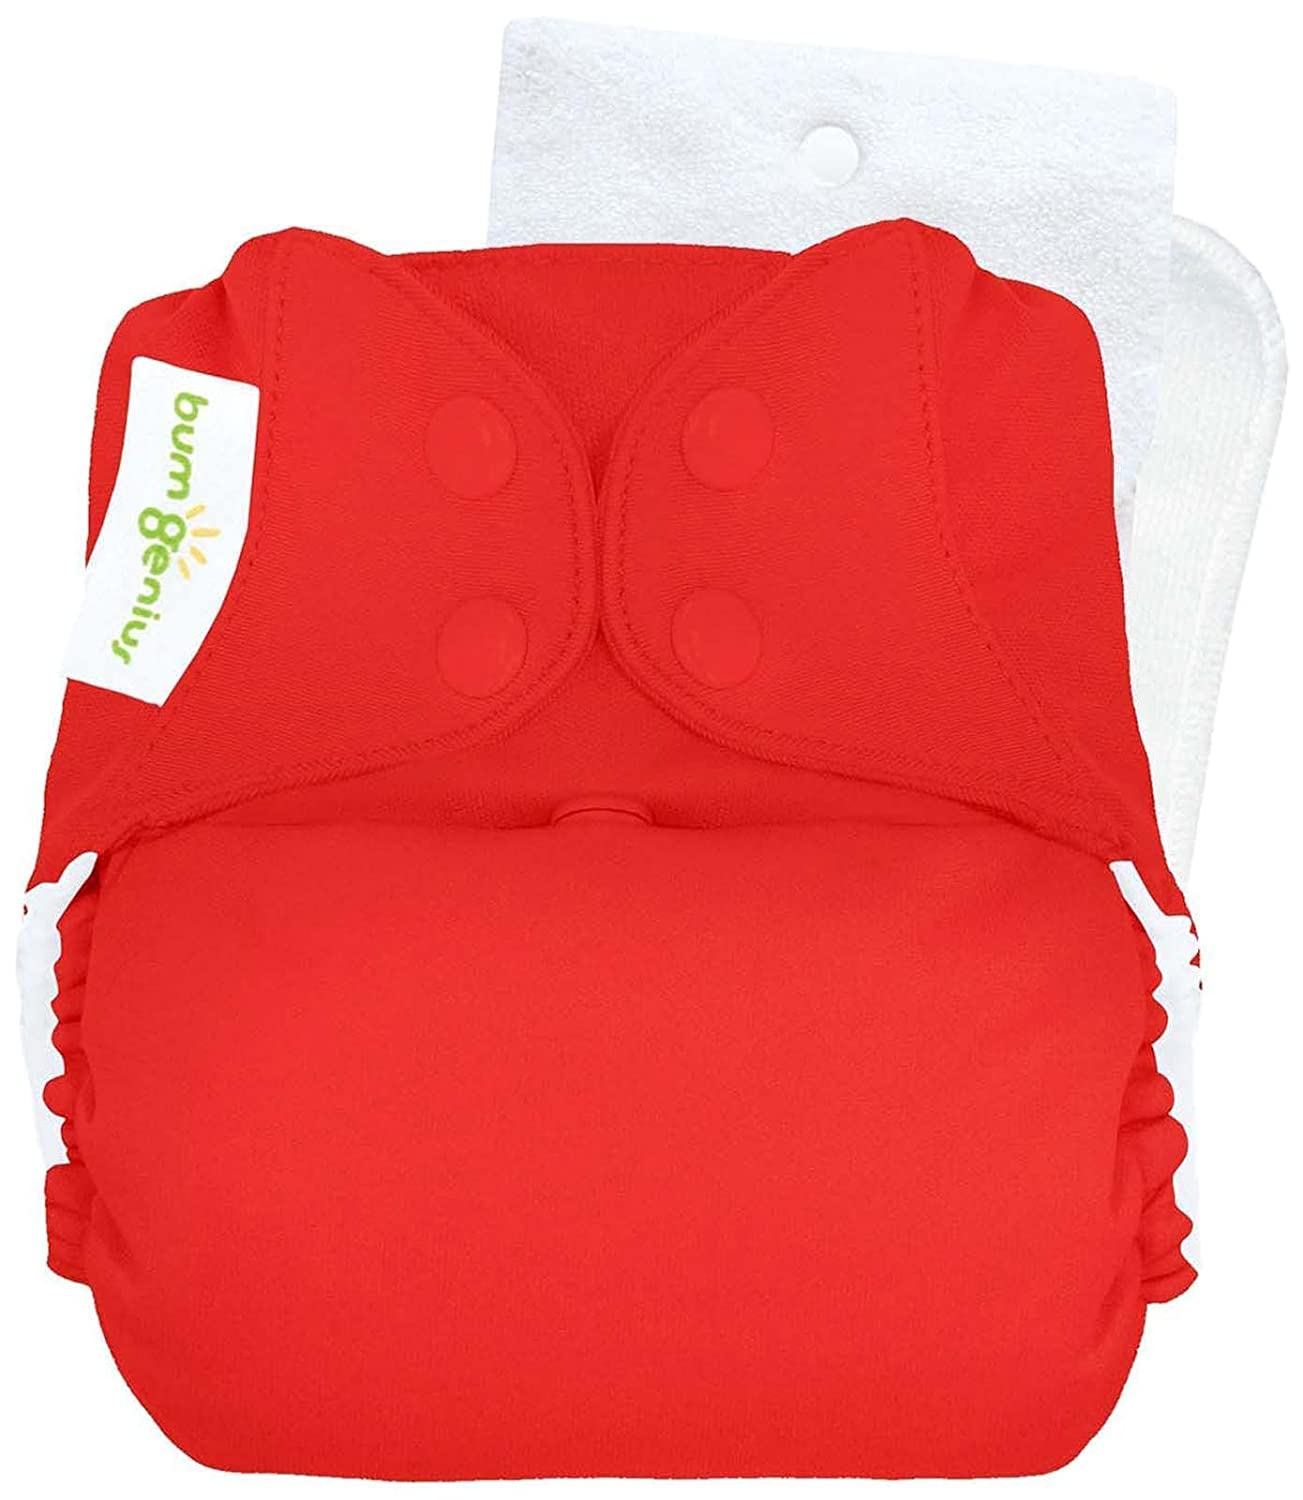 bumGenius Original One-Size Pocket-Style Cloth Diaper 5.0 (Pepper)